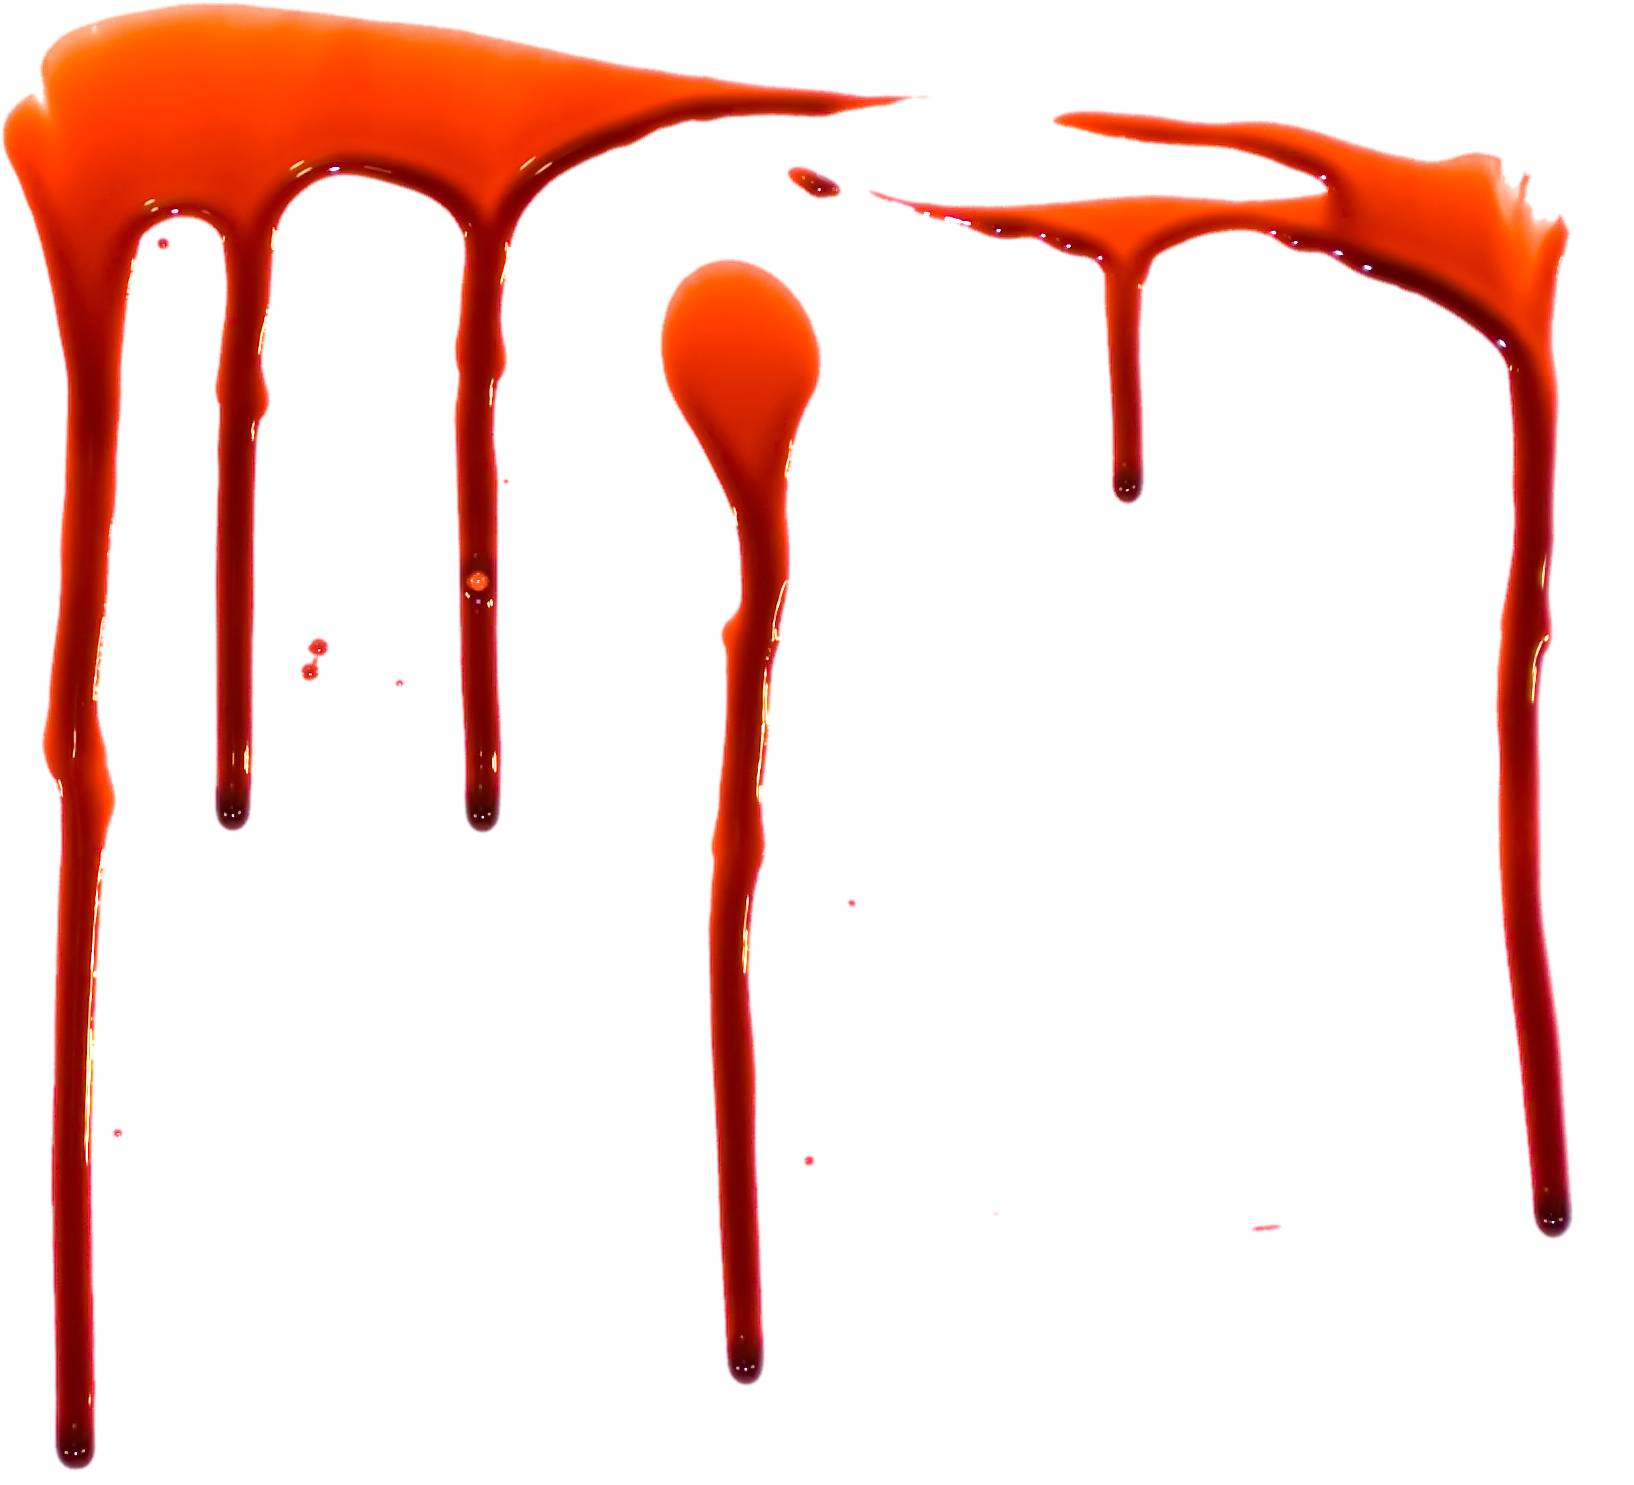 Blood drip png. Dripping transparent images pluspng